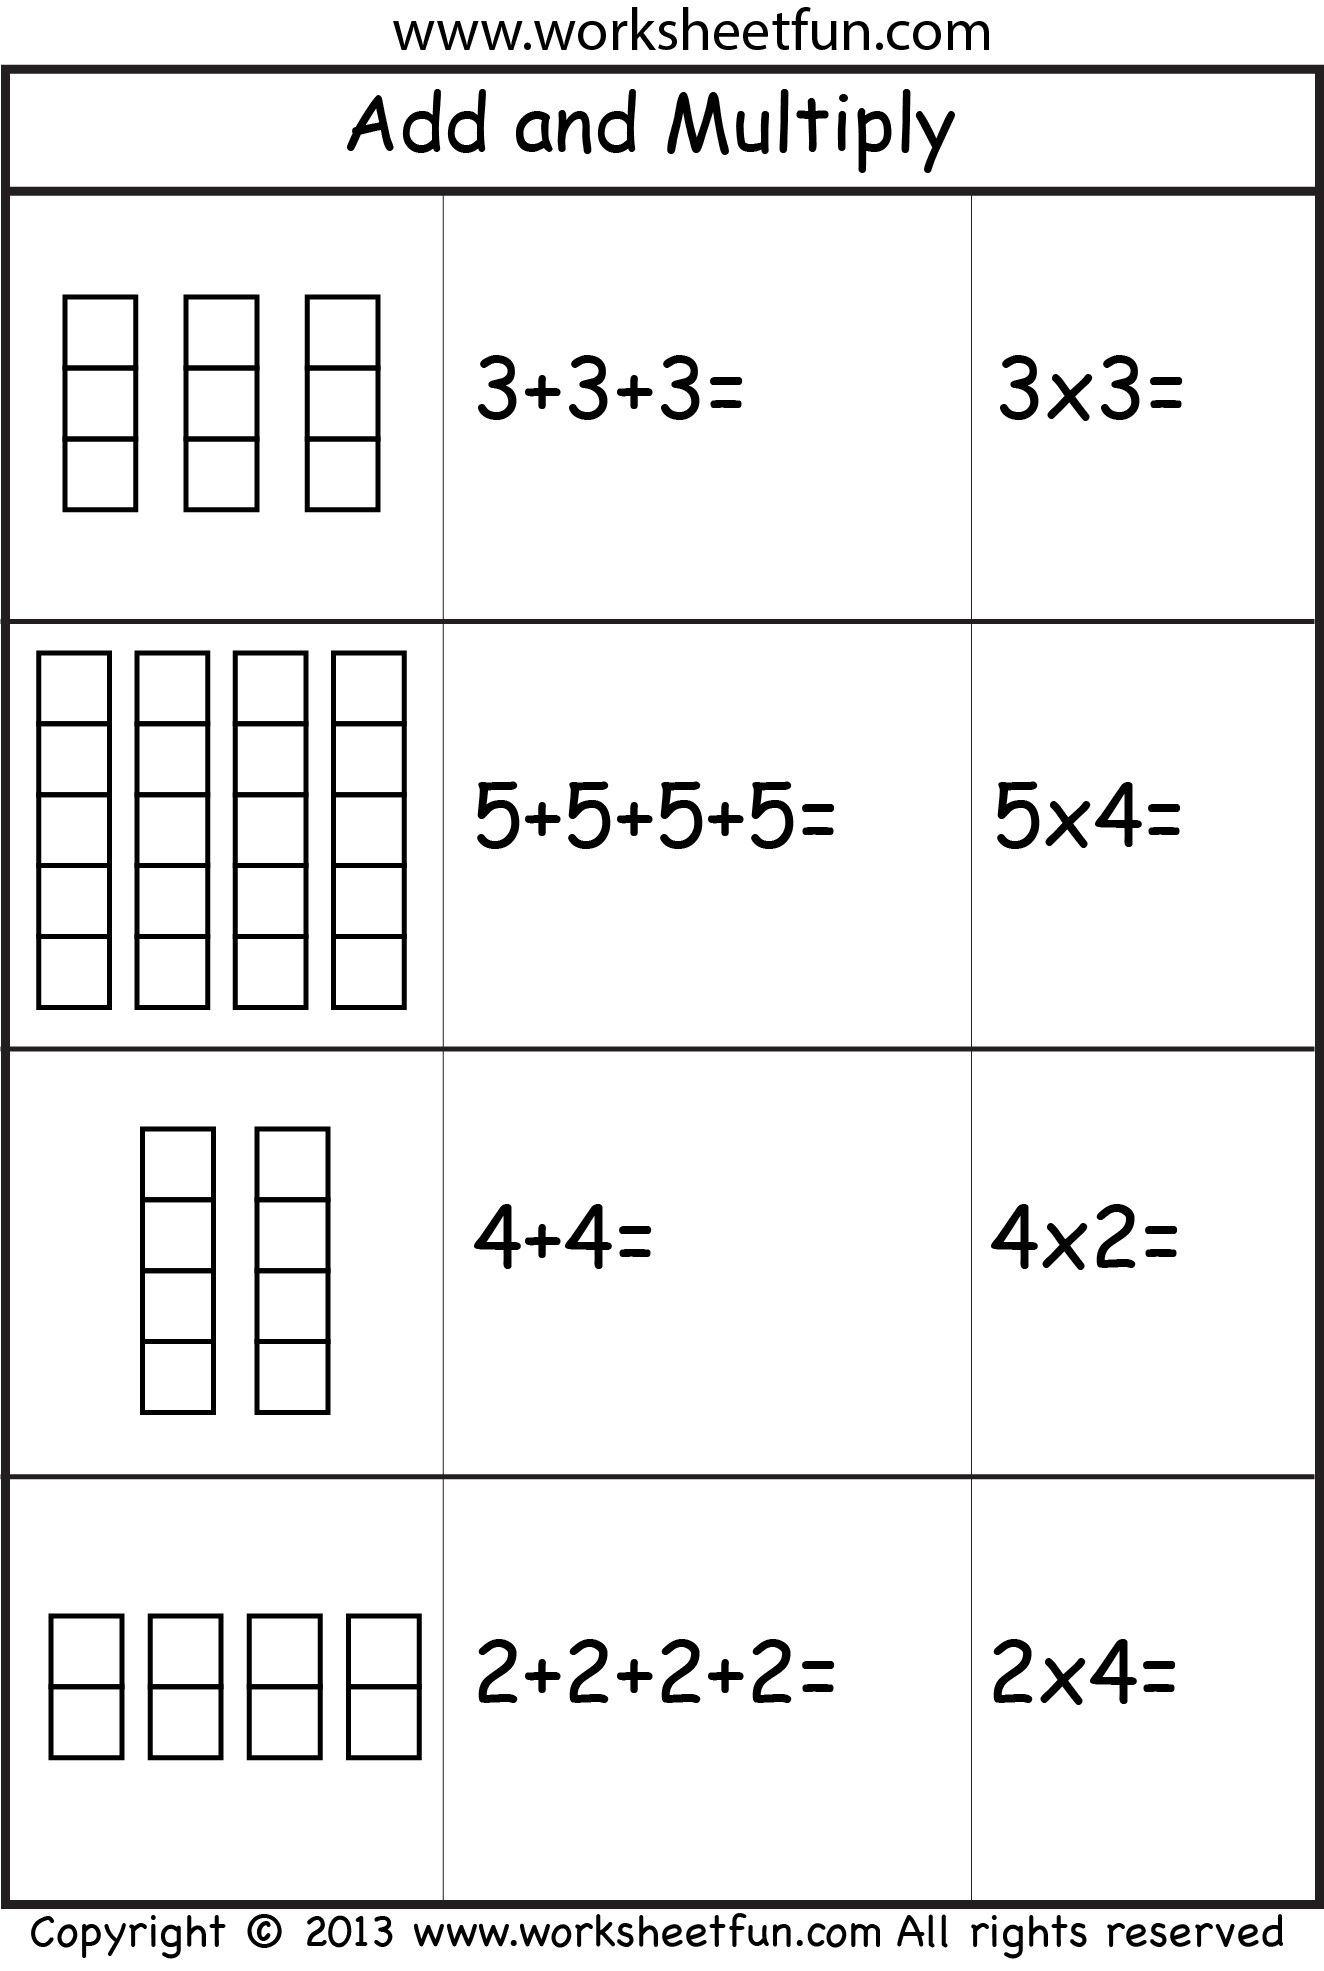 repeated addition multiplication worksheet arithmetic multiplication worksheets. Black Bedroom Furniture Sets. Home Design Ideas